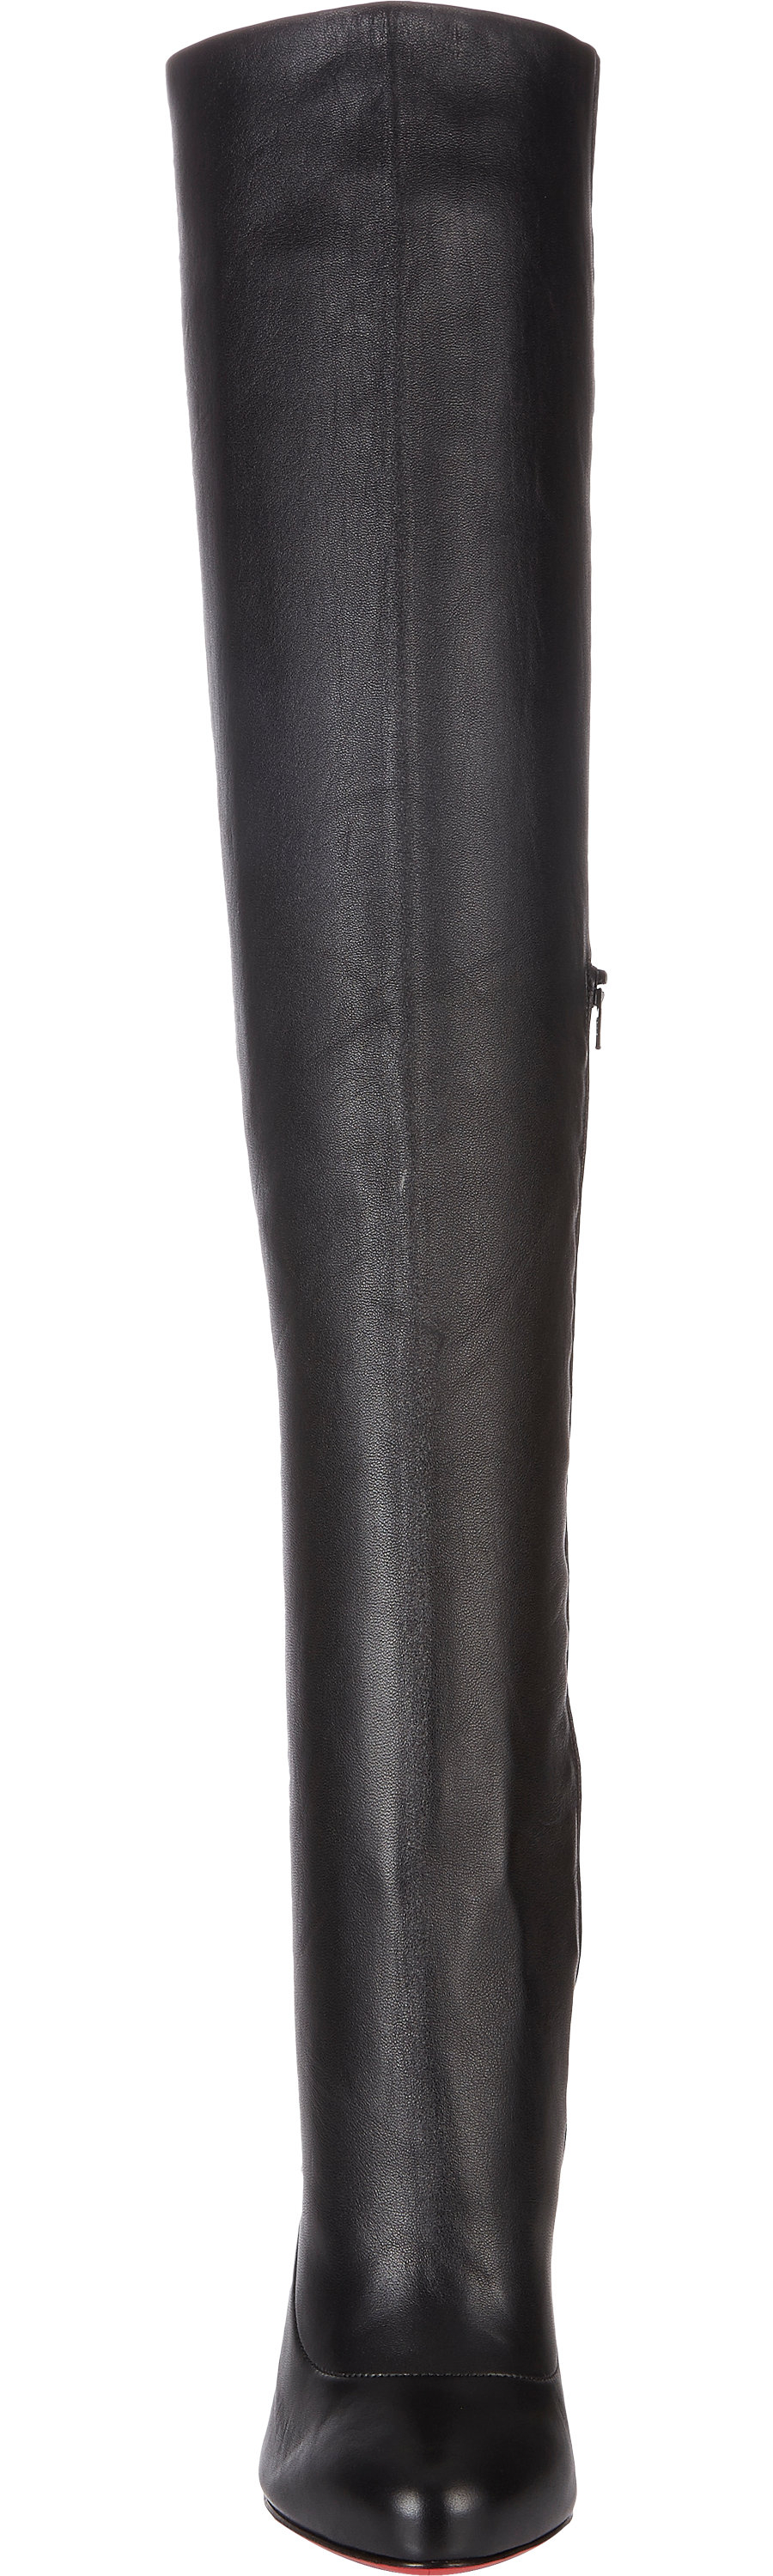 best replicas shoes - christian louboutin sempre monica 100 leather over-the-knee boots ...